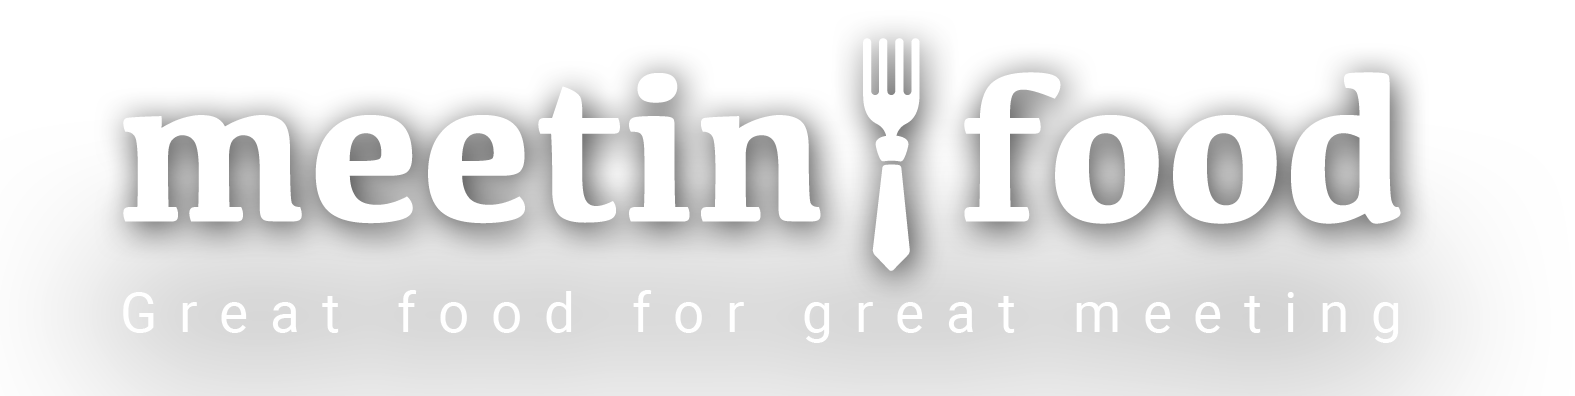 logo-banner-meetinfood